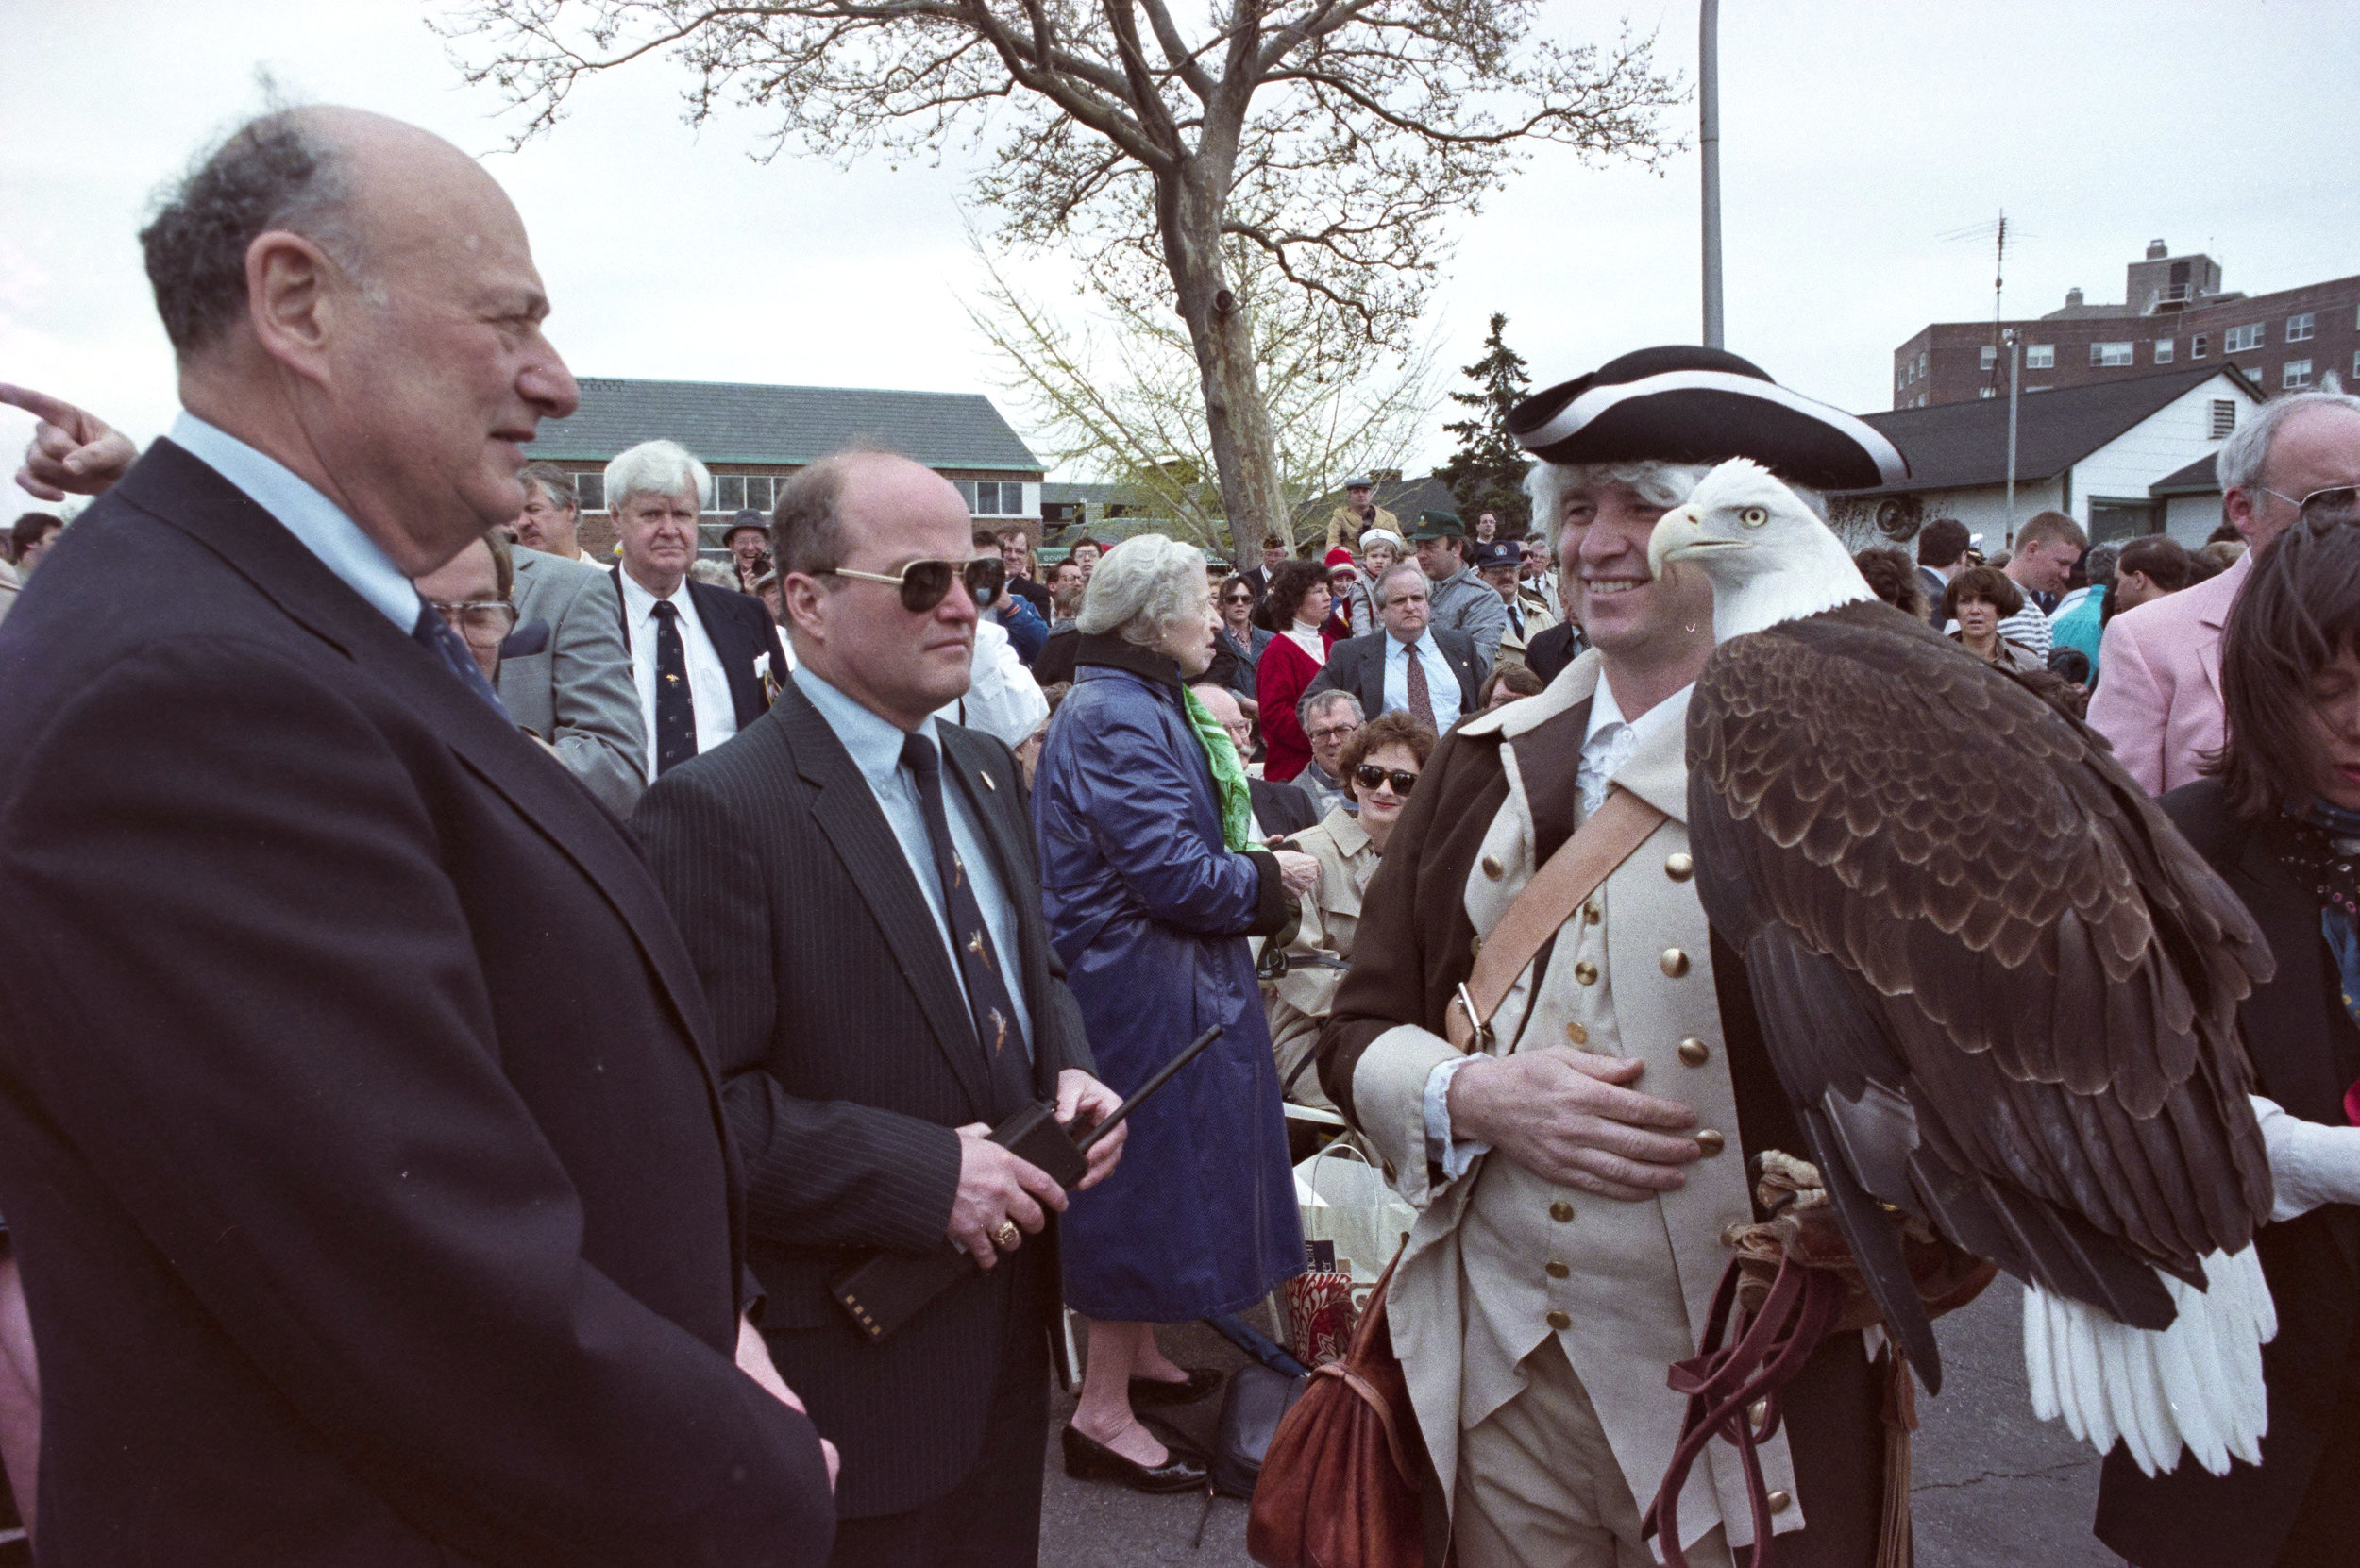 Mayor Edward Koch meets an eagle at Fleet Week 1989 ceremonies on Governors Island, April 29, 1989, roll 1, frame 24A, photographer Joan Vitale Strong. Mayor Edward I. Koch Collection, NYC Municipal Archives.